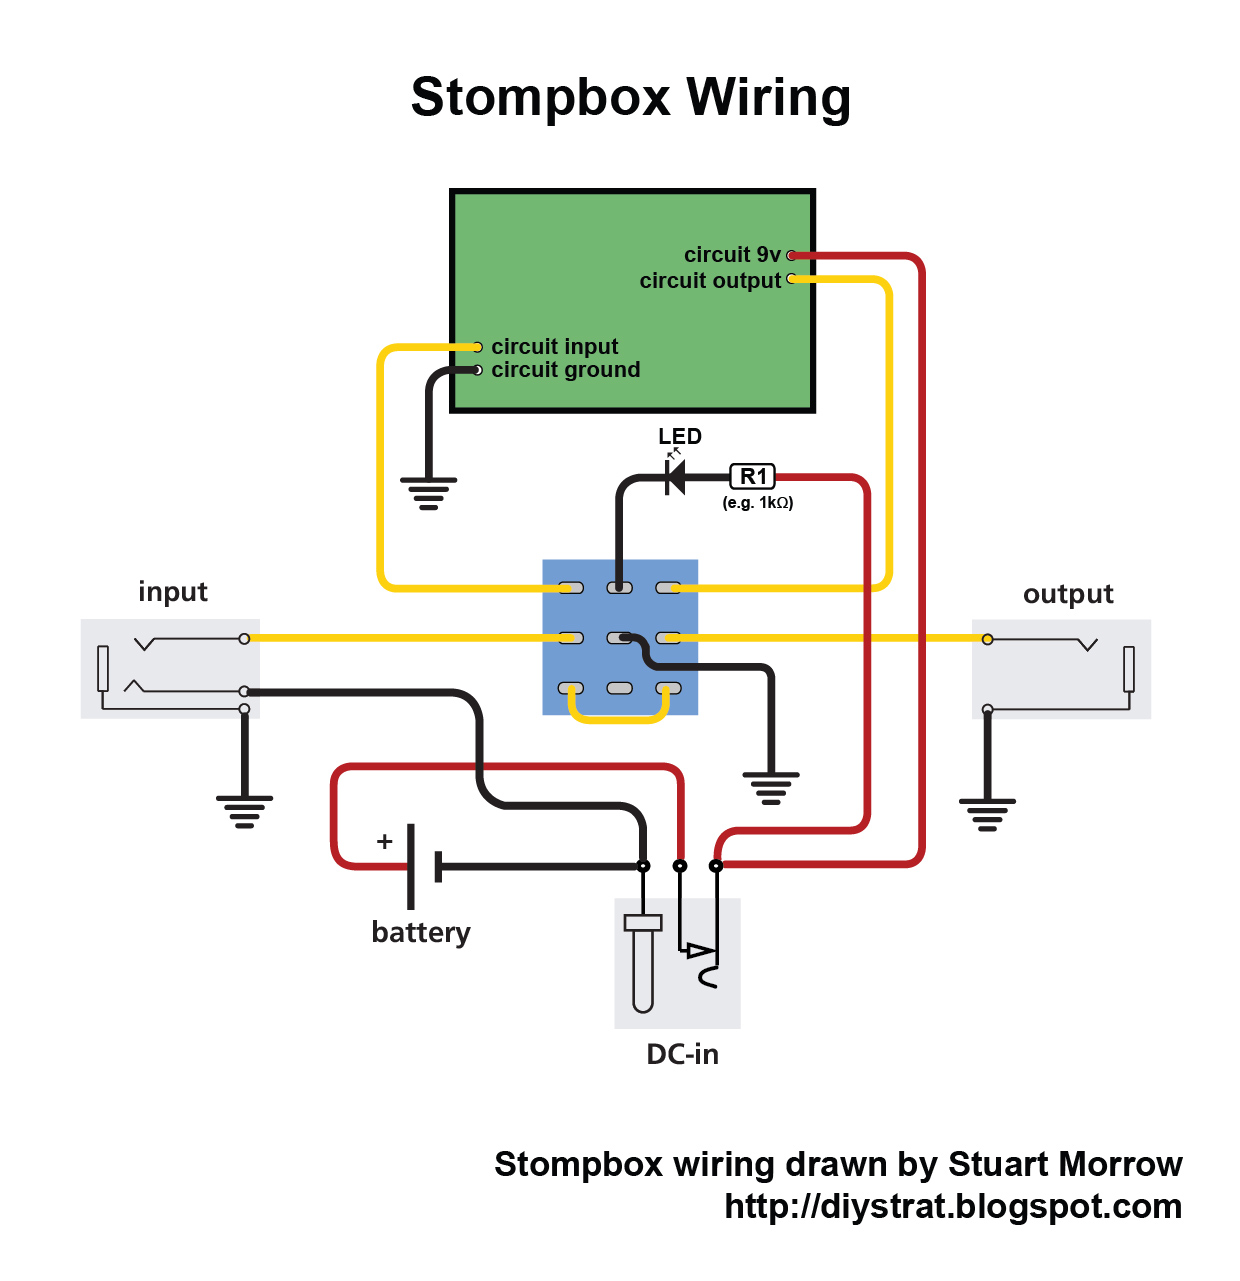 Free download output jack wiring complete wiring diagrams wiring diagram guitar jack free download wiring diagram xwiaw rh xwiaw us microphone jack wiring diagram gibson les paul pickup wiring cheapraybanclubmaster Images